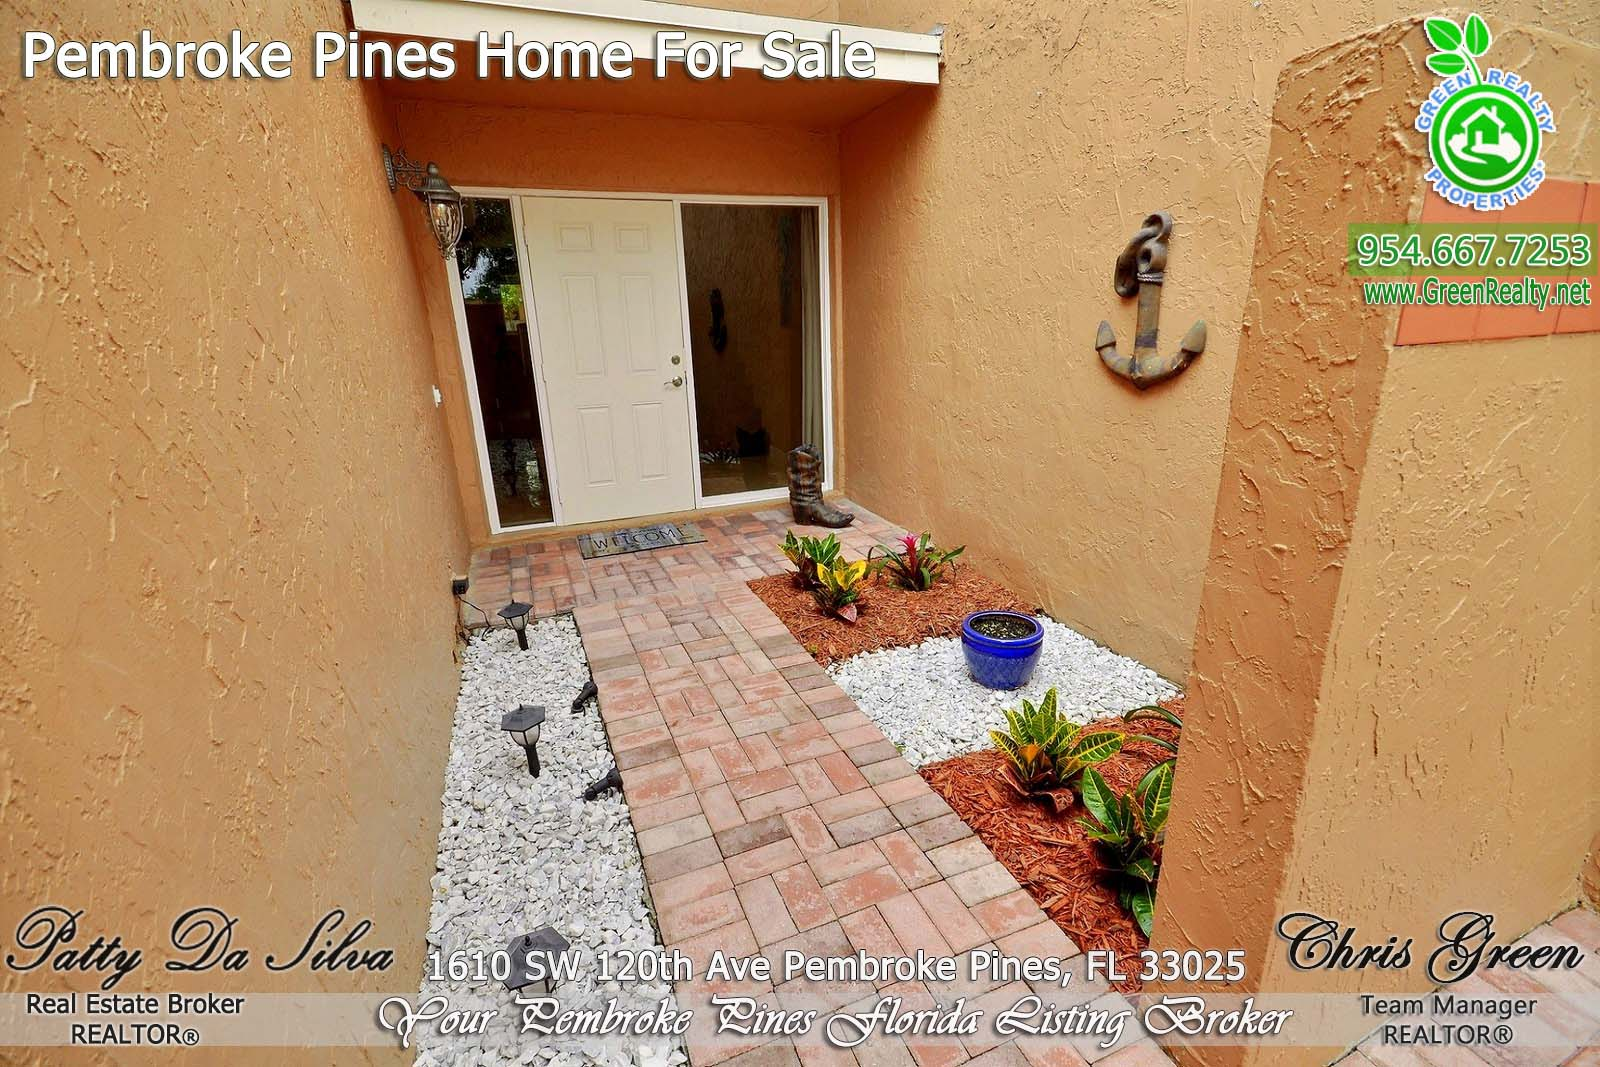 2 Homes For Sale in Pembroke Pines (1)